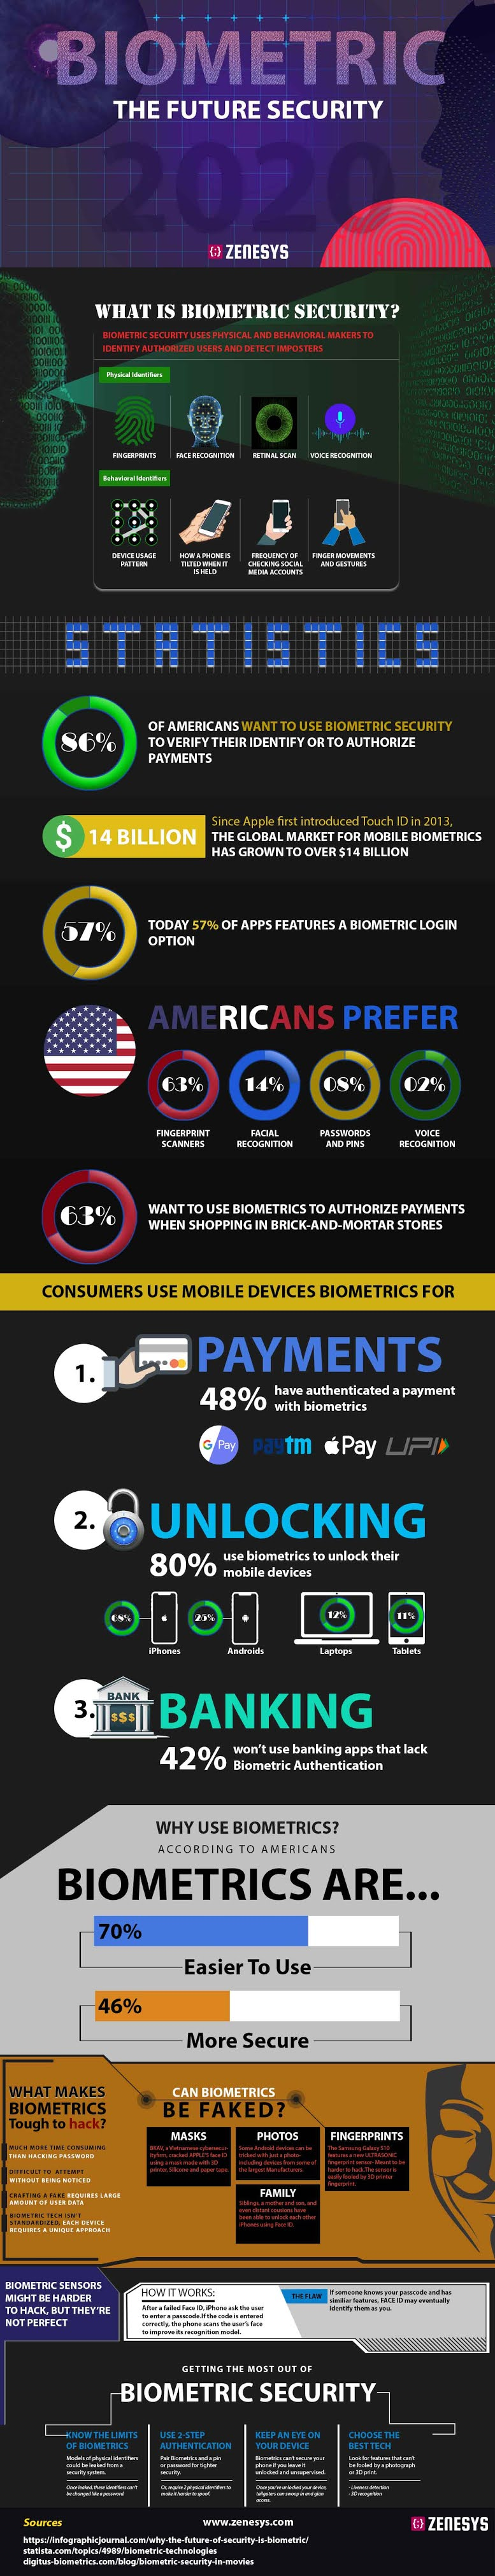 Biometric-The Future Security #infographic